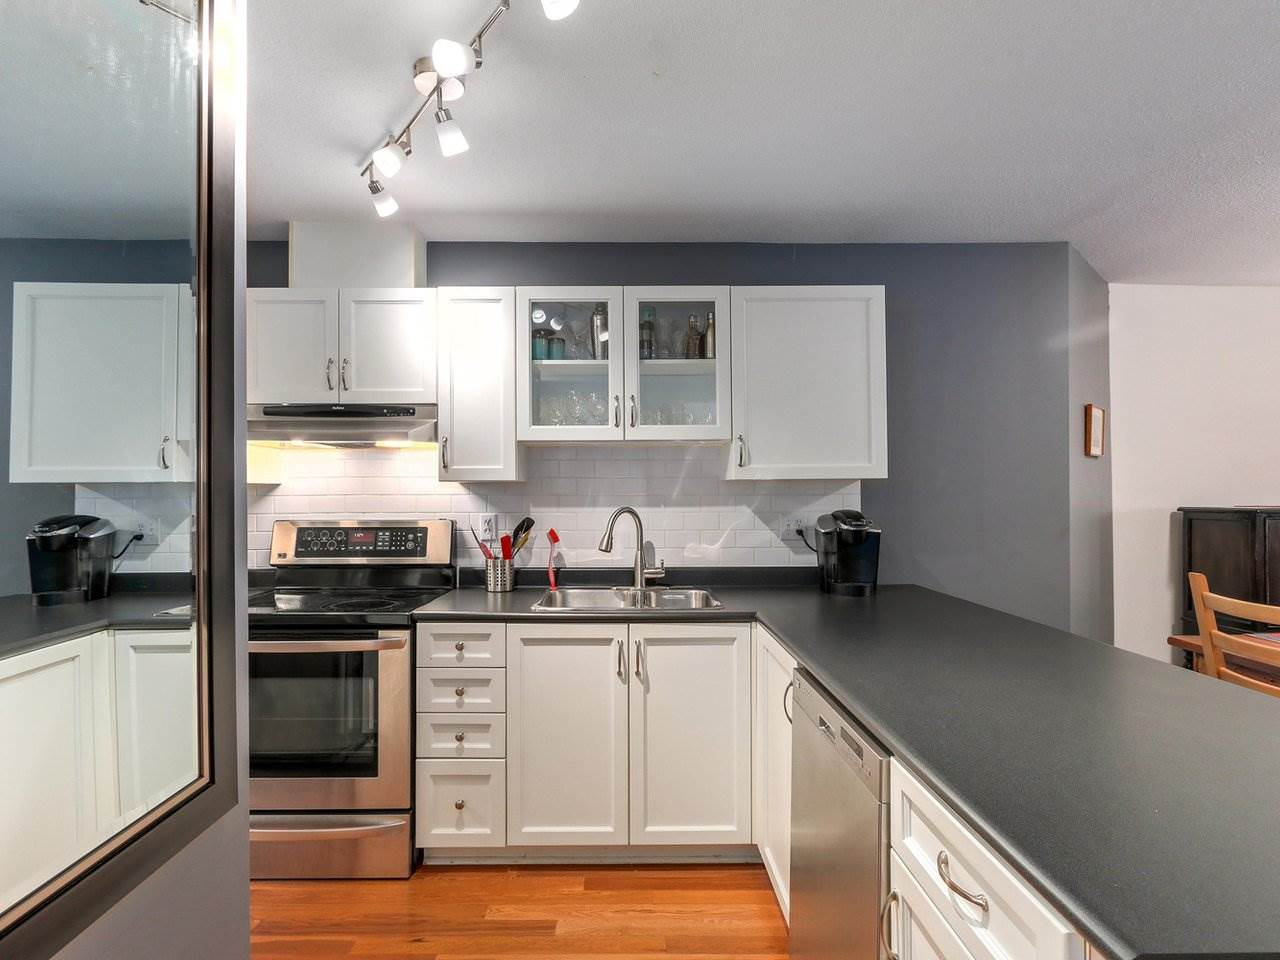 Location, Size, Layout & Quality!  It's all here.  X-Large (814 sq ft), beautifully renovated 1 bed garden suite with 148 sq ft patio in RAINSCREENED building by Douglas Park.  Walk to Granville Island, Kitsilano, Cambie Village, Main St...you are in the heart of it all here!  This gorgeous sizable condo offers a kitchen with expansive counter space, award winning K.Craft cabinetry, st.st. appliances, and a full size pantry.  The open dining area and large living room each look onto a 23' long patio and trees offering privacy on quiet 21st Ave.  Tired of tiny bedrooms....this is a KING sized bedroom with walk in closet and a spacious ensuite offering 2 sinks.  Rentals & 1 cat or dog okay!                Open House Sat. Aug. 18th 2:00-4:00